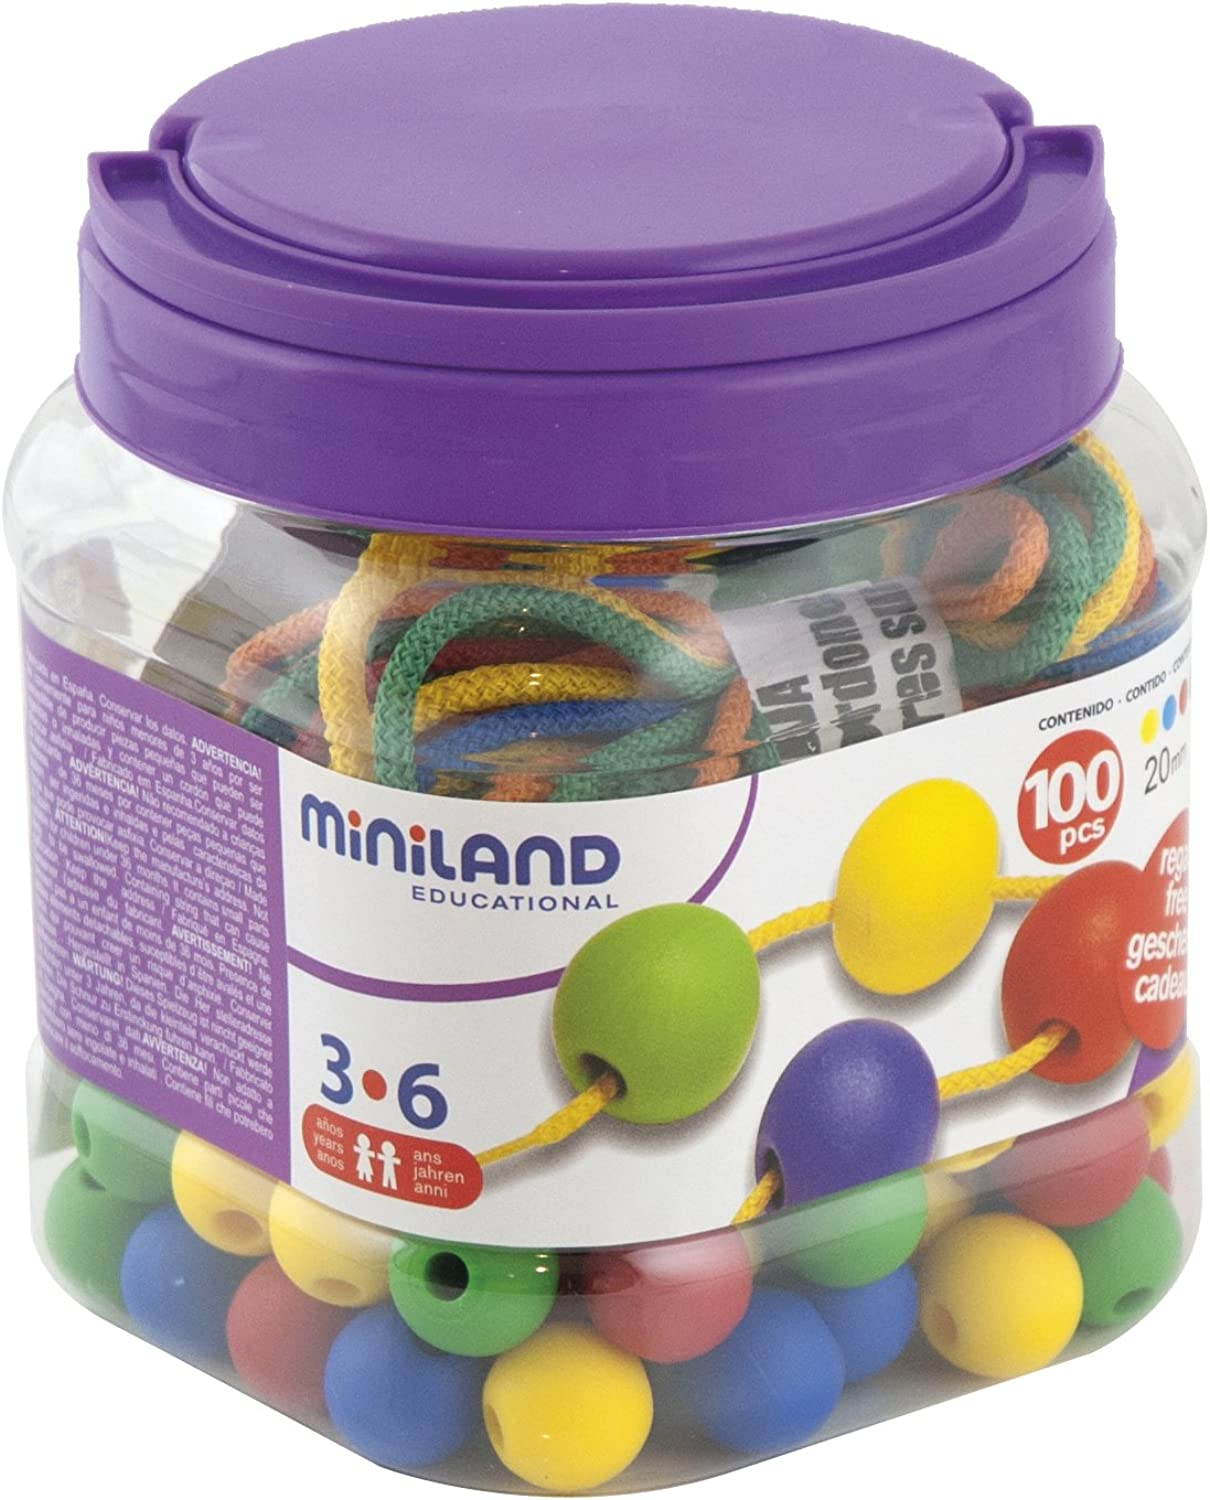 Miniland Lacing Balls (100 Pieces and 10 Laces)